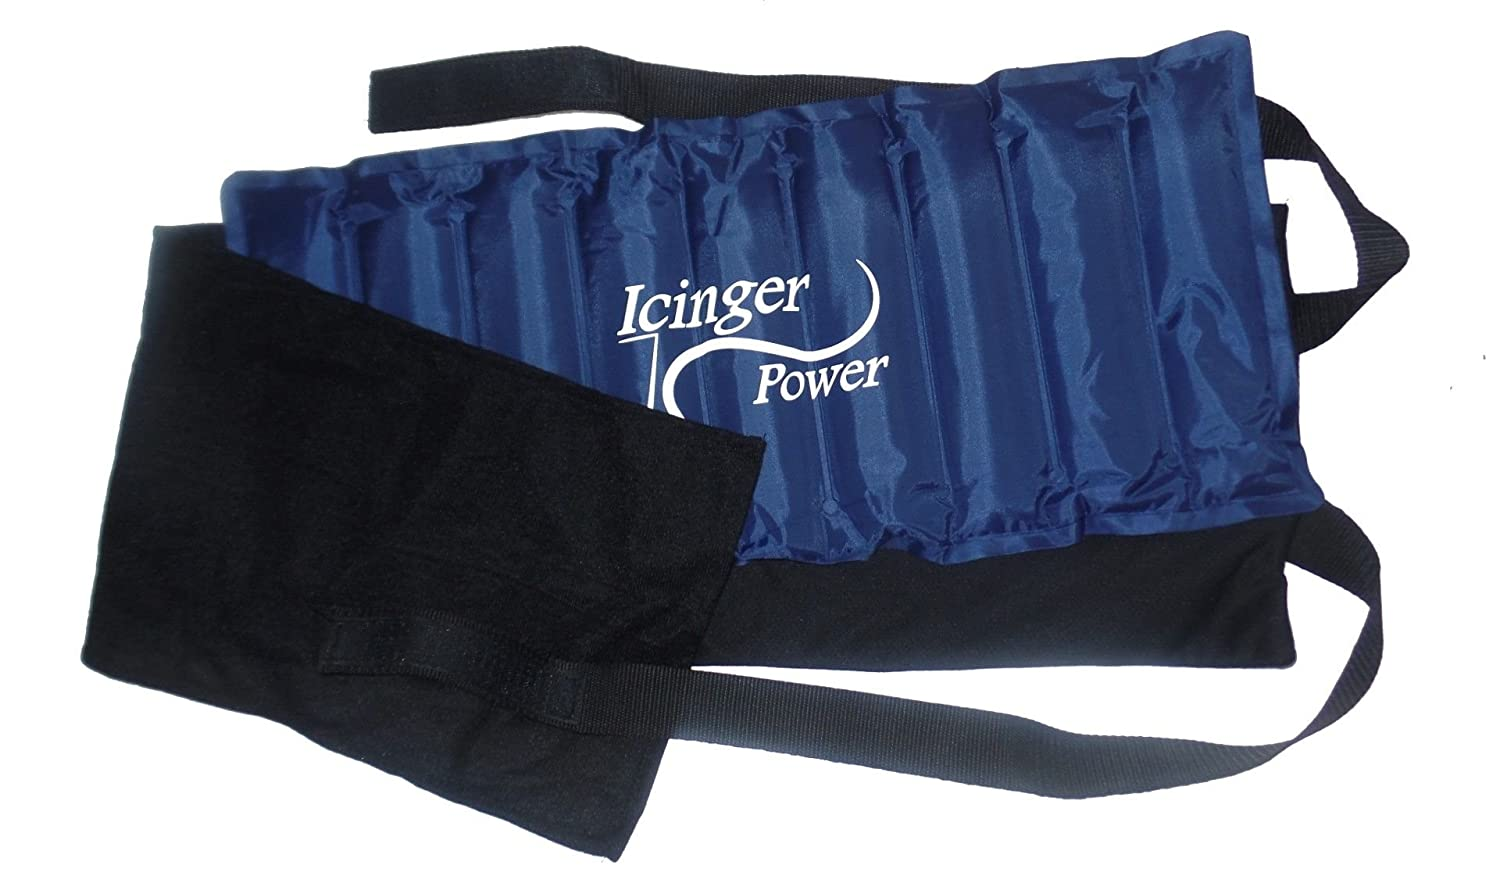 Large Powerful Abdominal Obliques Cooling Belt 1500G - To Burn Fat With Cold (Covers A Very Large Area) - Better Than Electric Belts